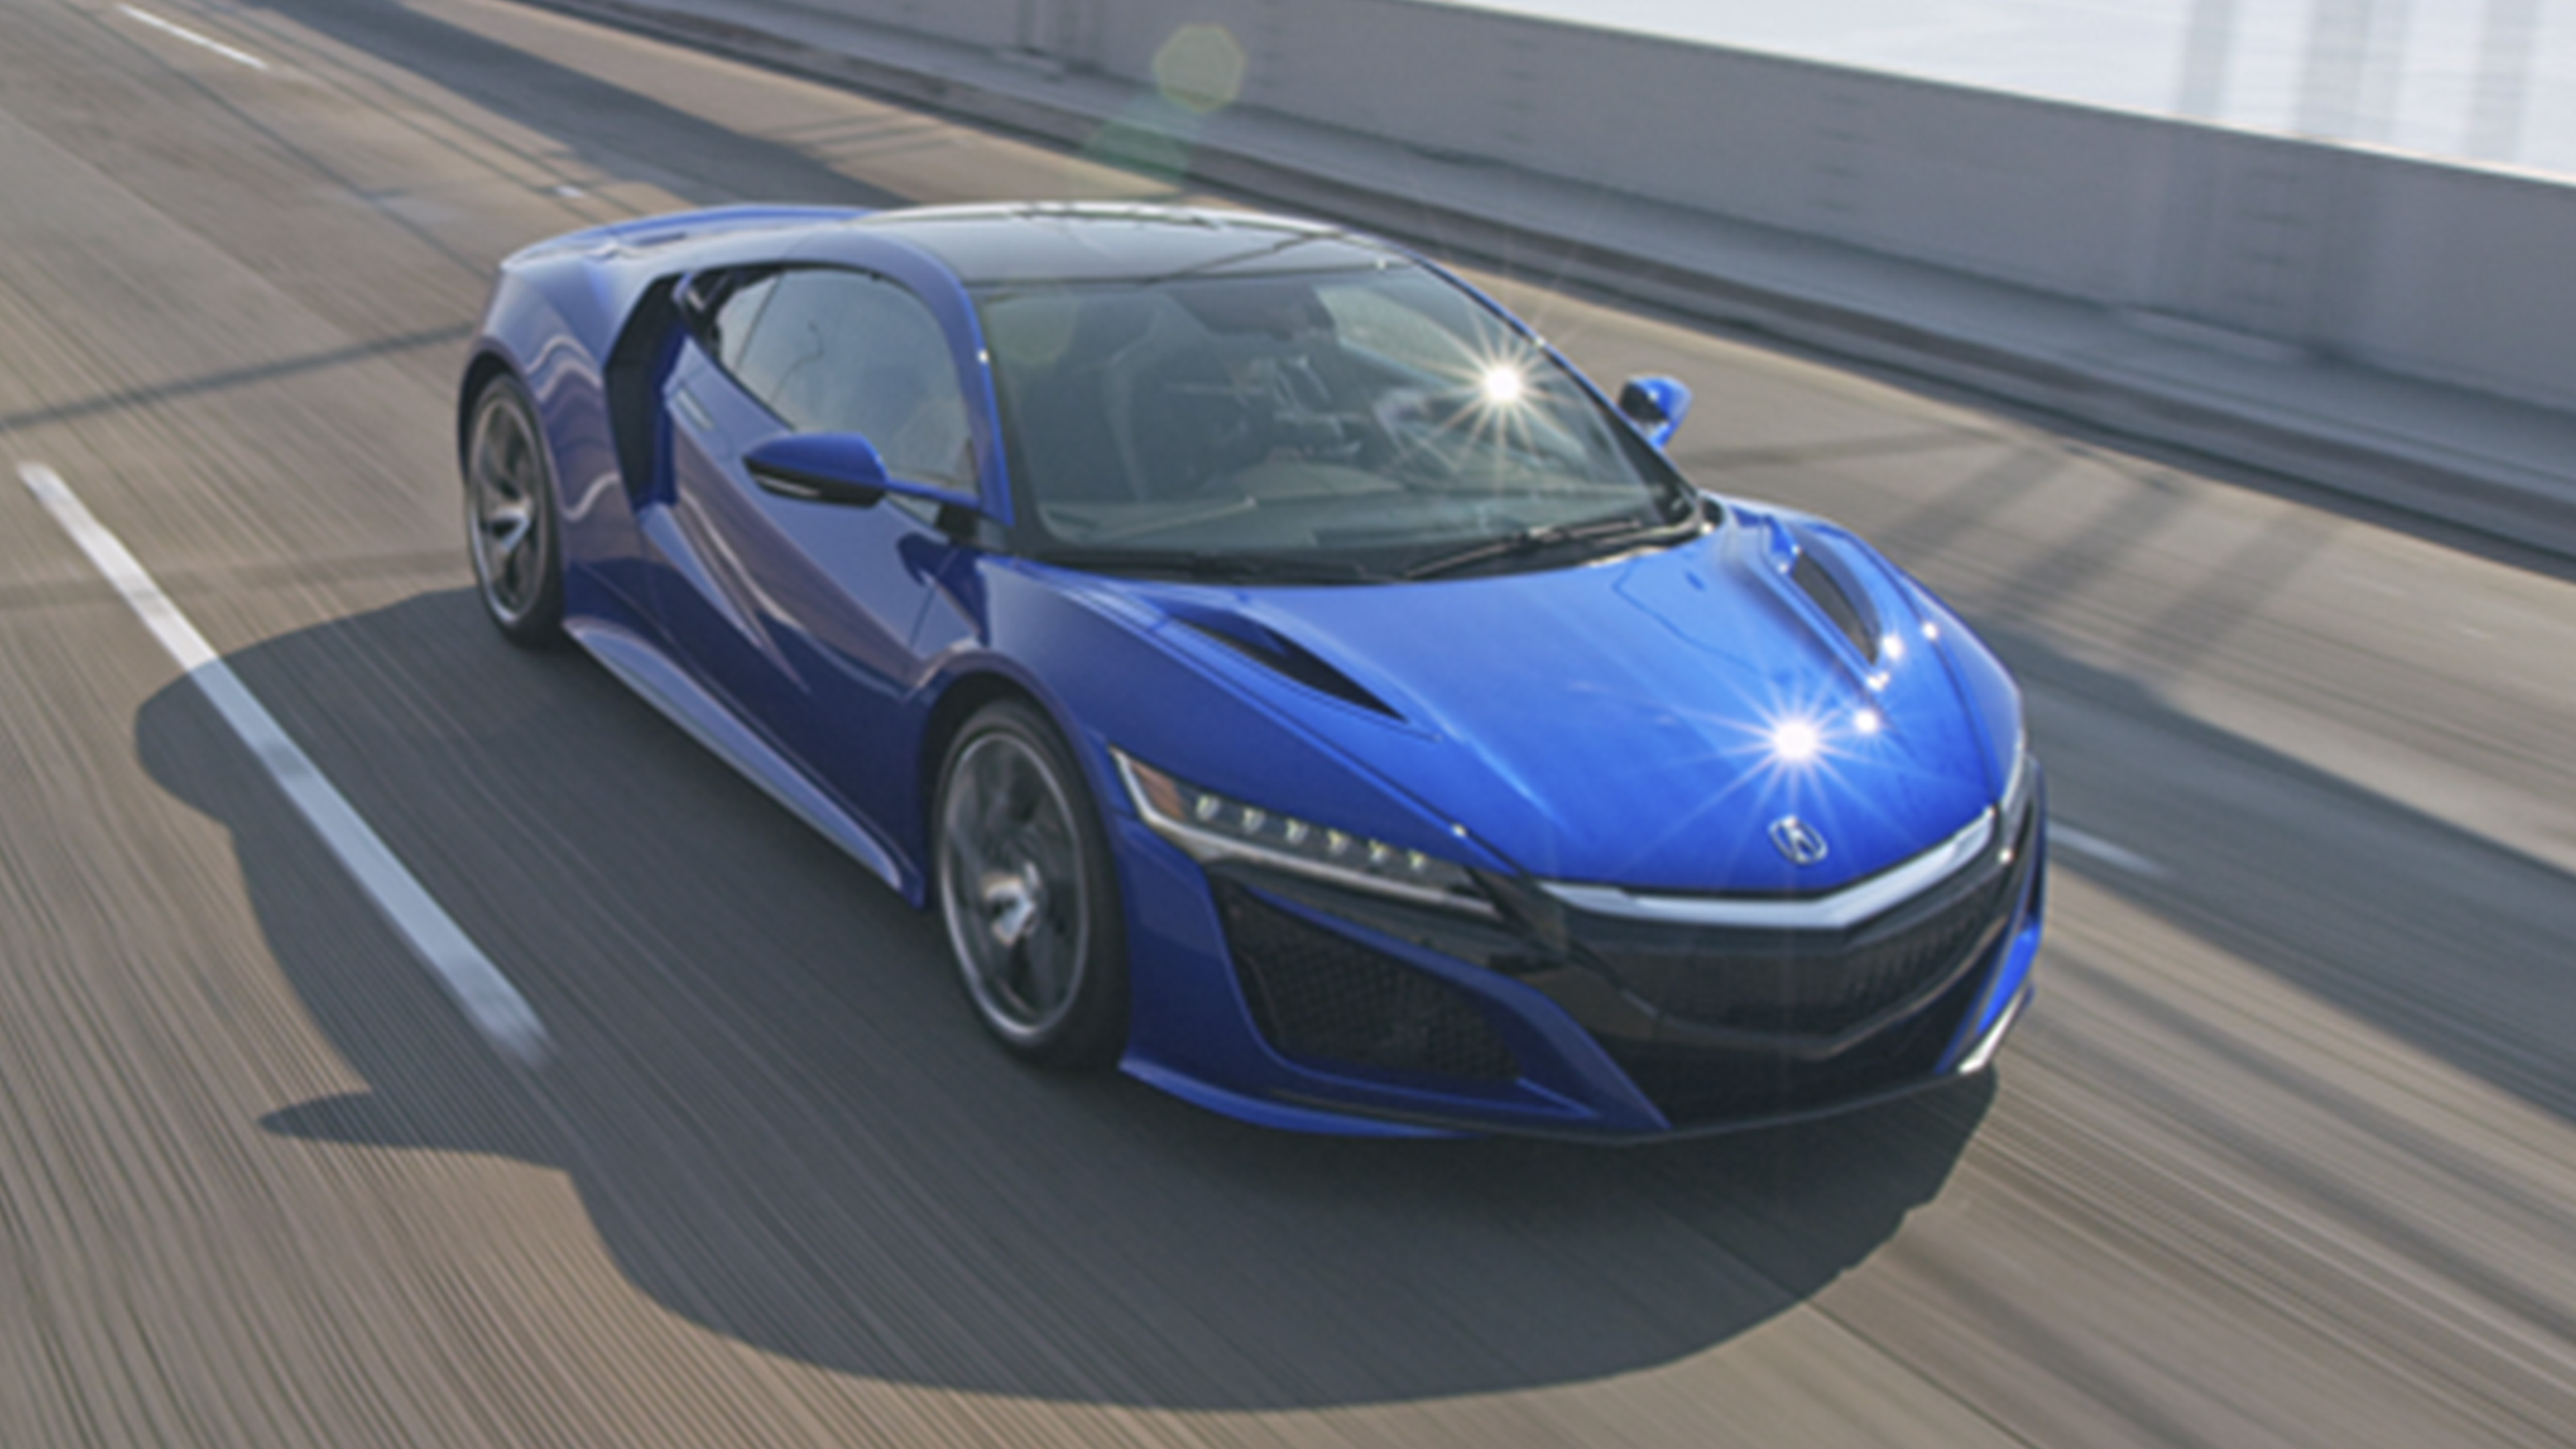 Acura NSX NextGeneration Supercar Acuracom - Latest sports car 2016